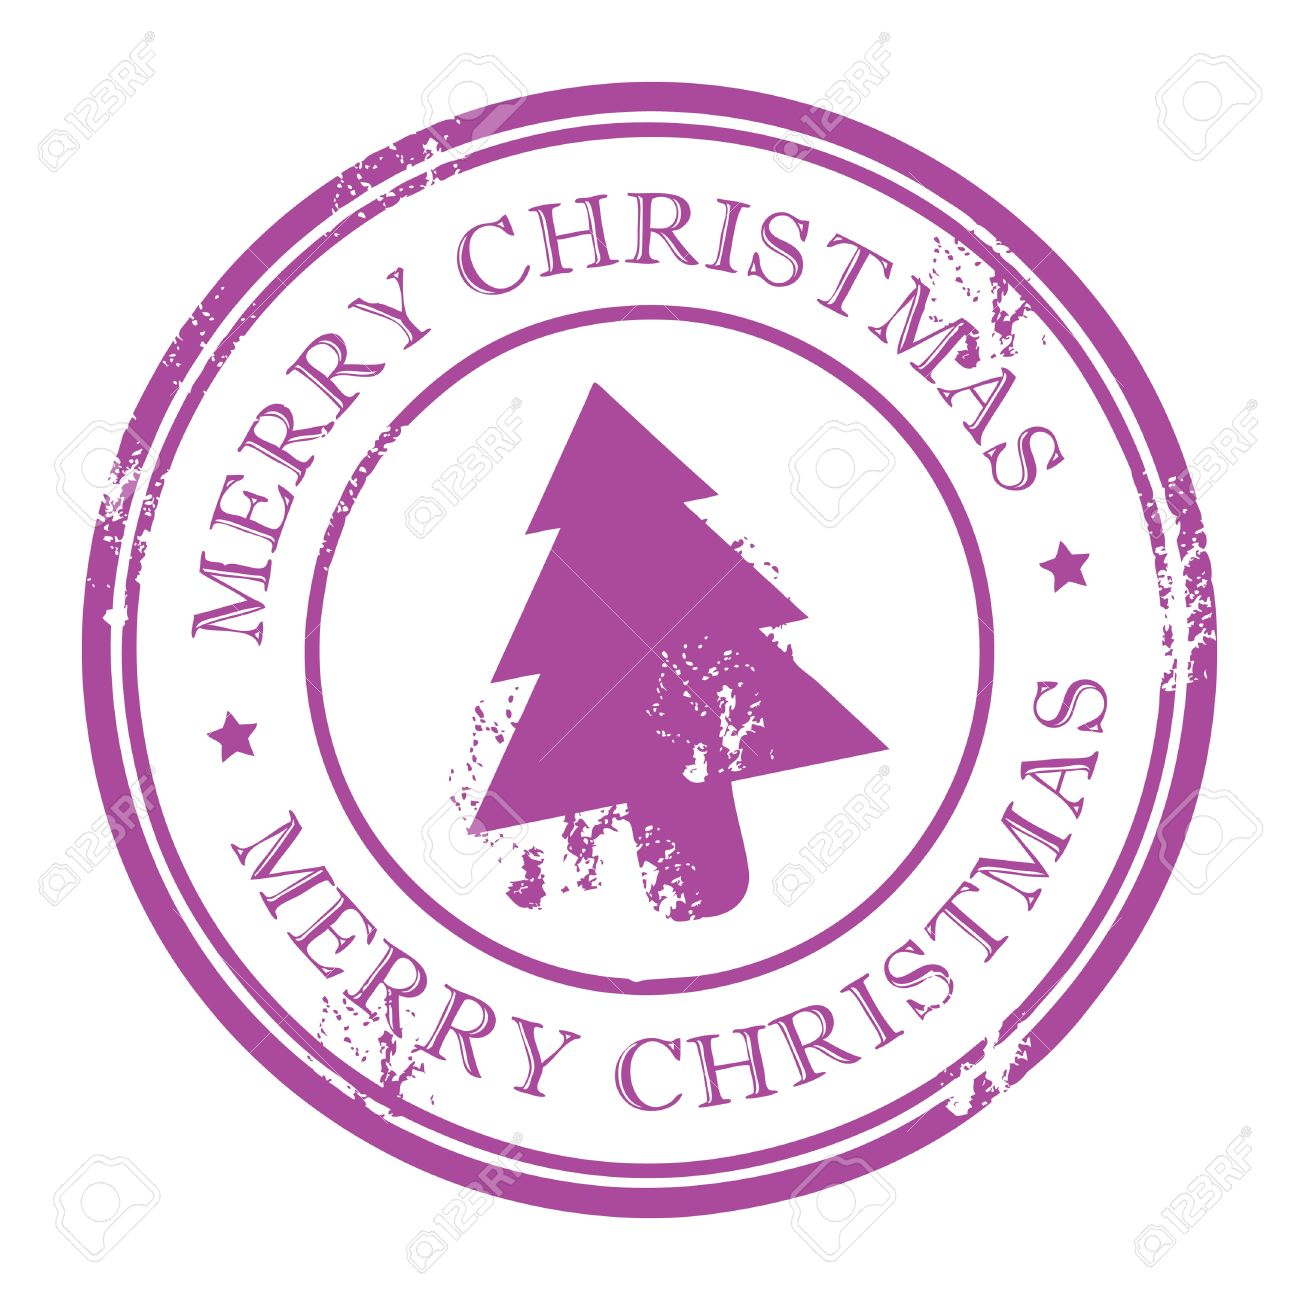 Grunge Stamp With Xmas Tree And The Text Merry Christmas Written ...